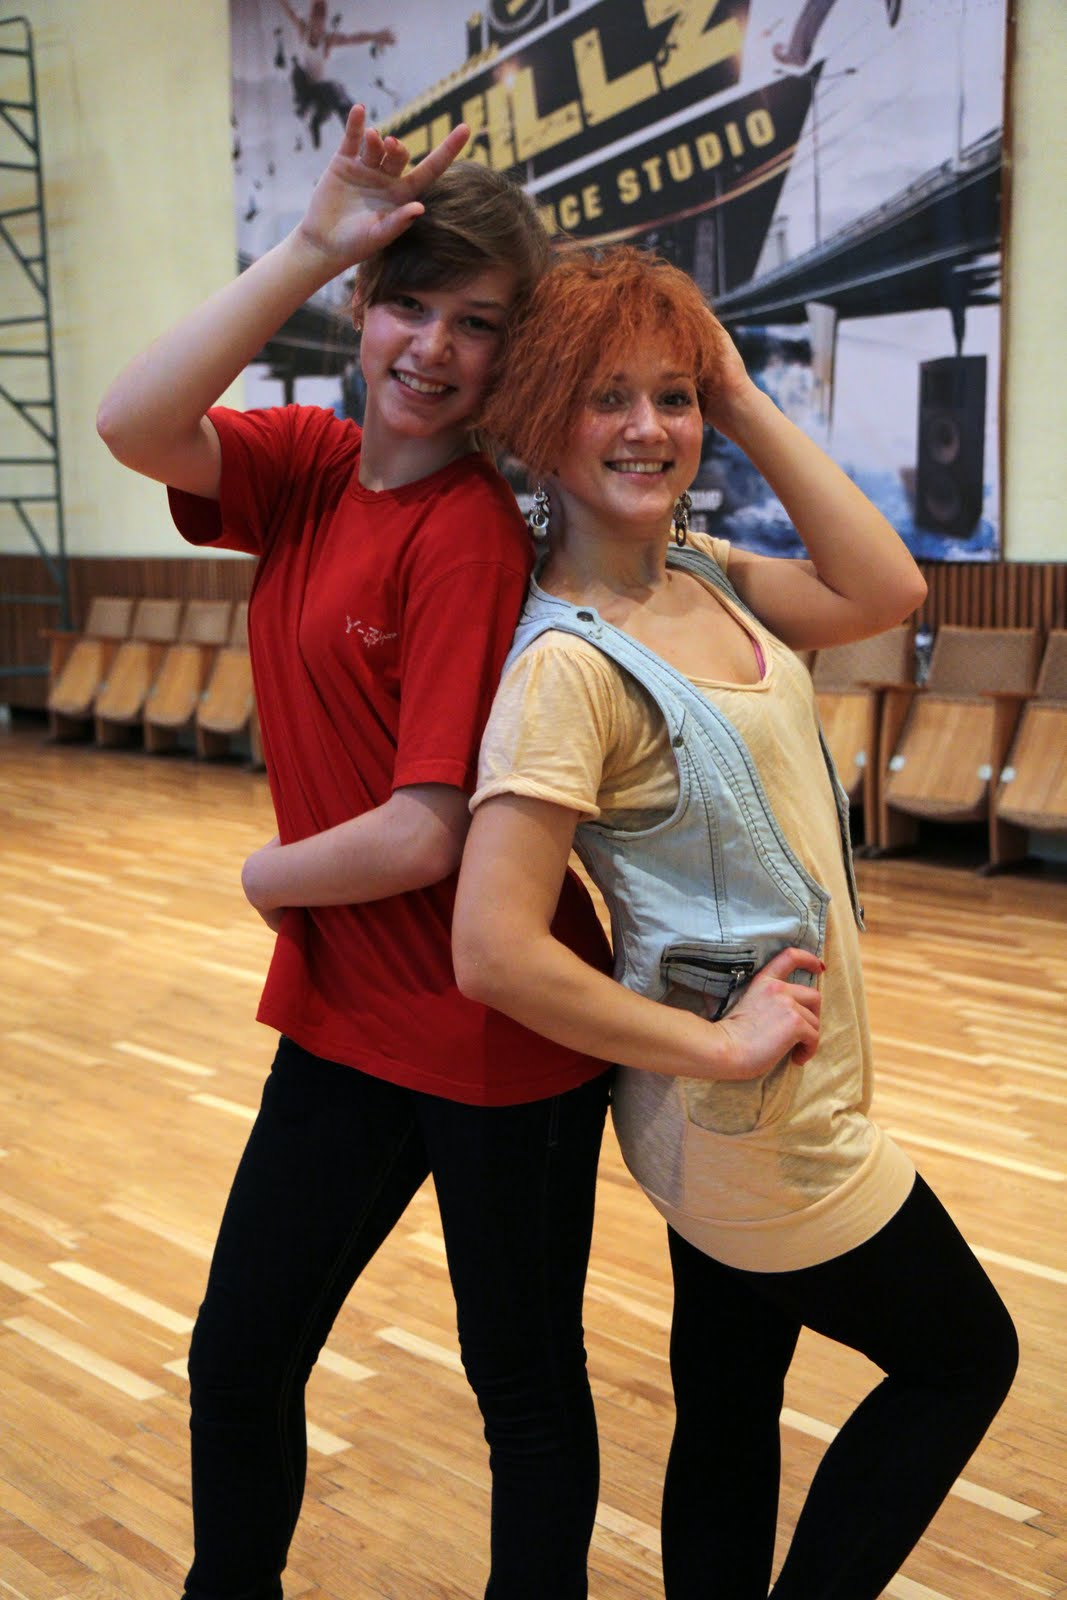 Waacking workshop with Nastya (LV) - IMG_2092.JPG